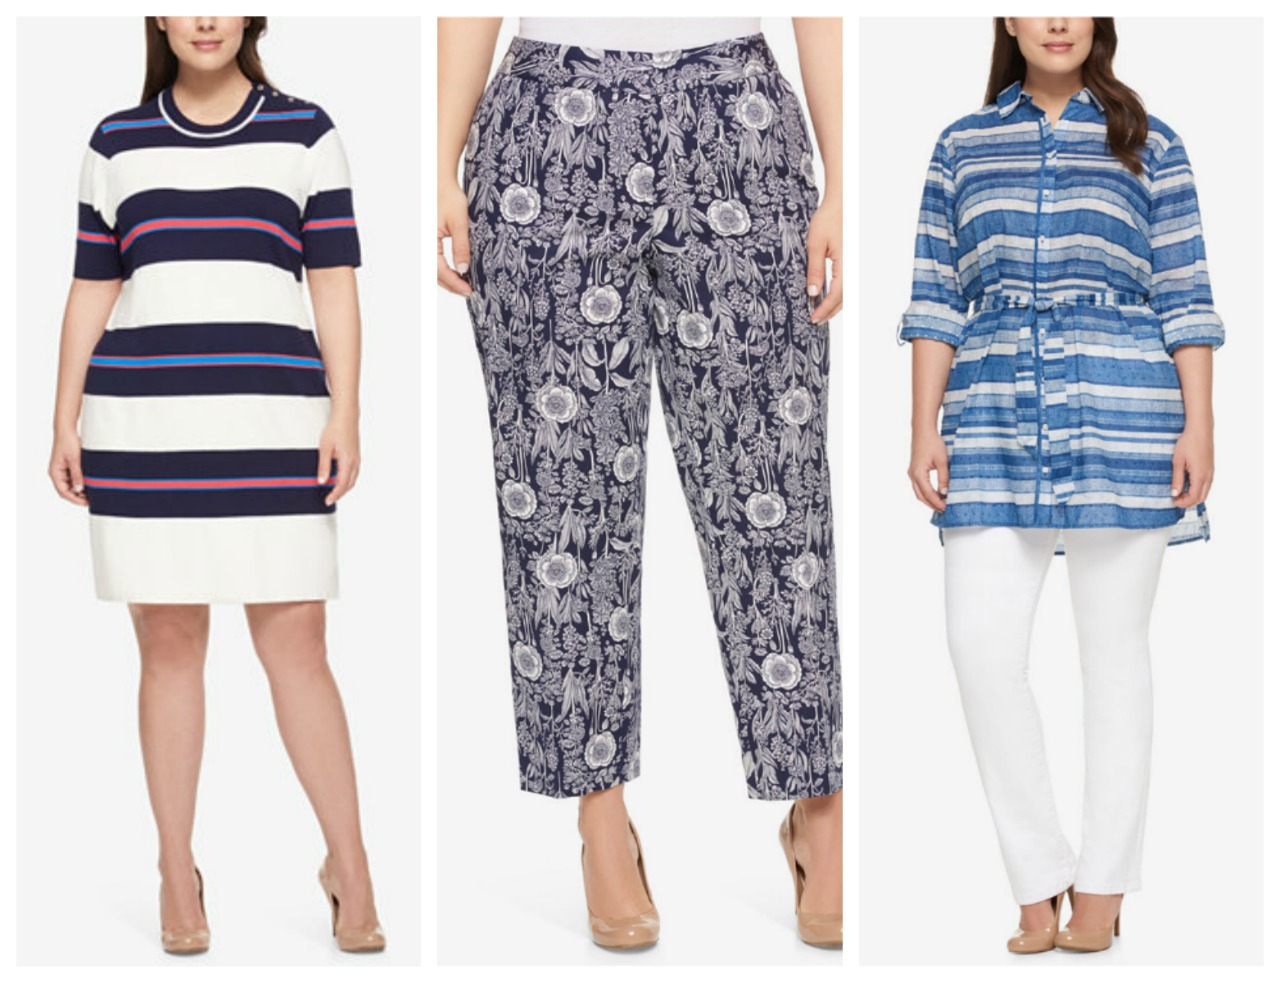 059a44afb1f43 You Can Now Shop Tommy Hilfiger In Plus Sizes Up To 24W